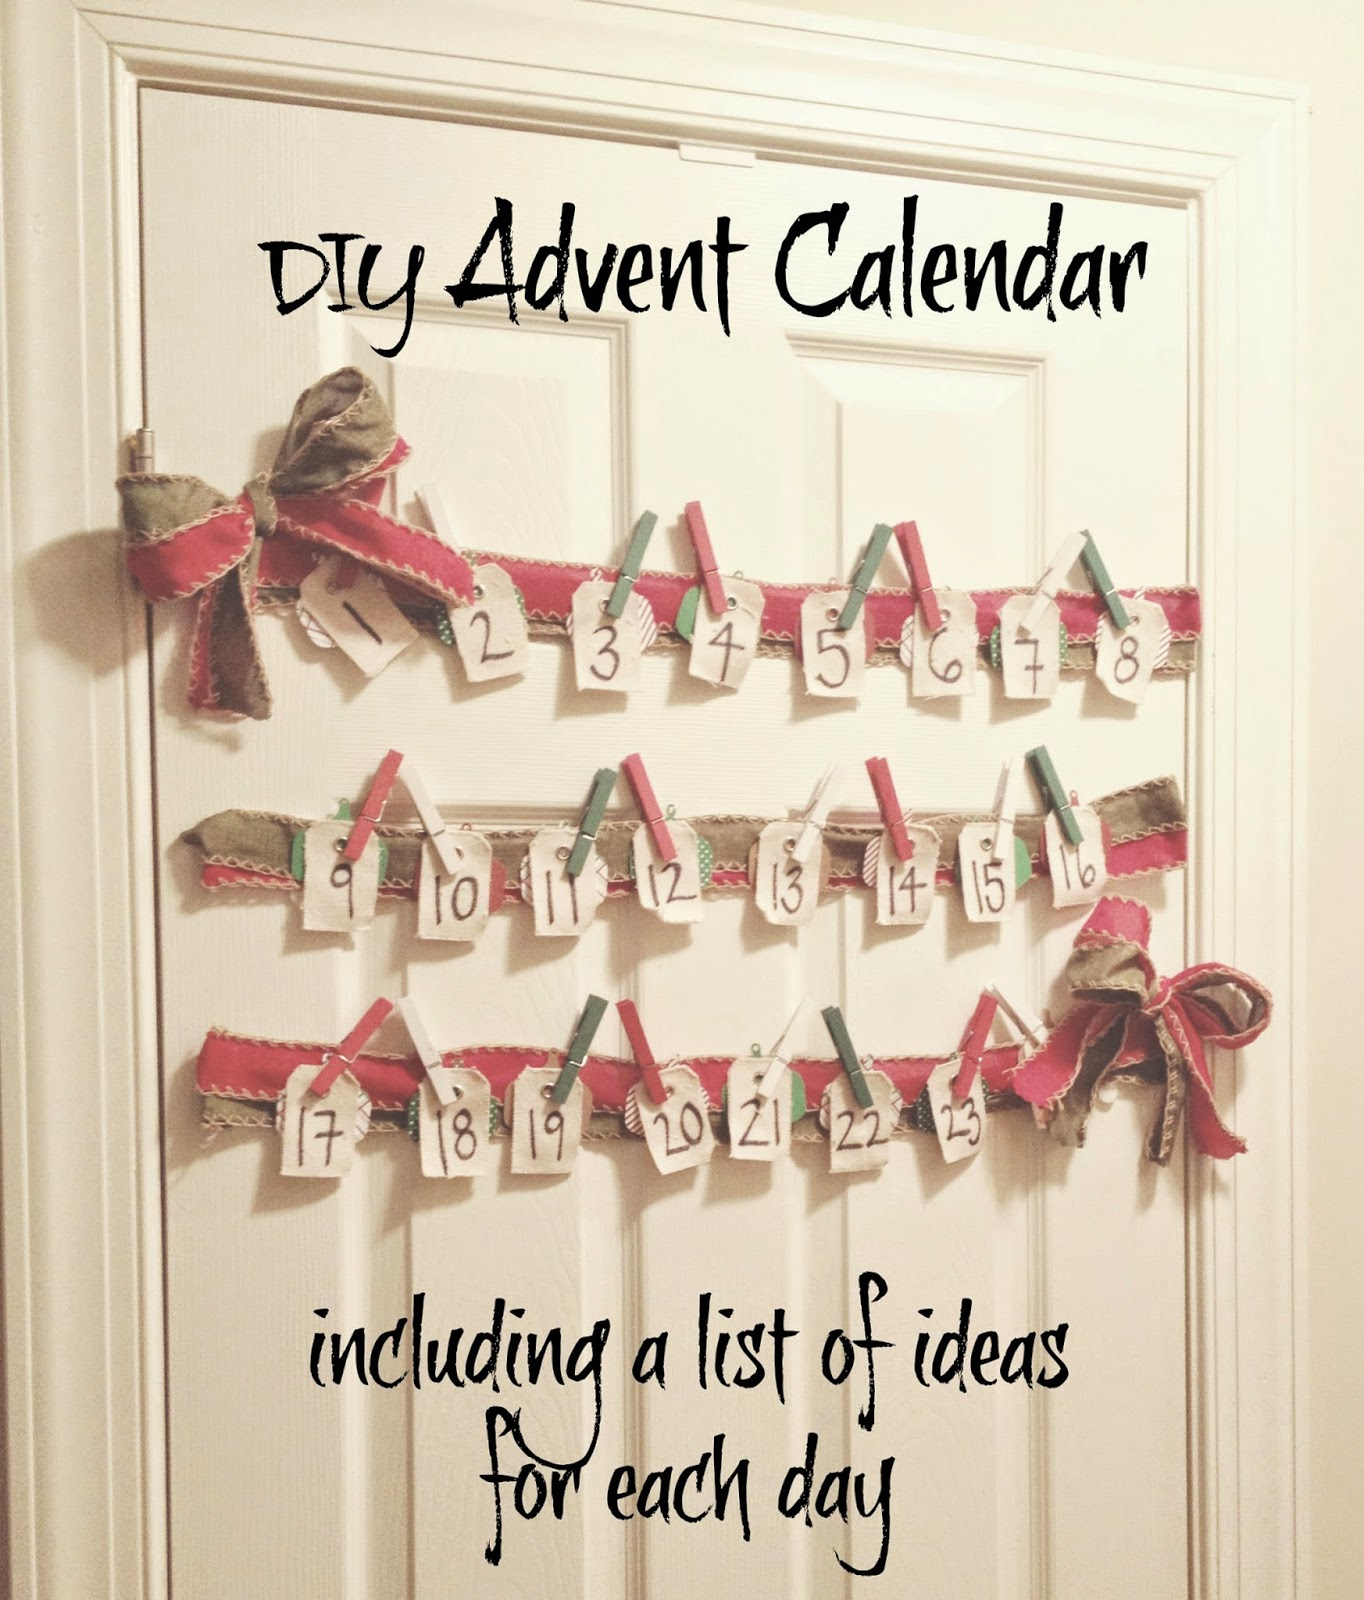 Advent Calendar List Ideas : Dancing with ashley diy advent calendar including a list